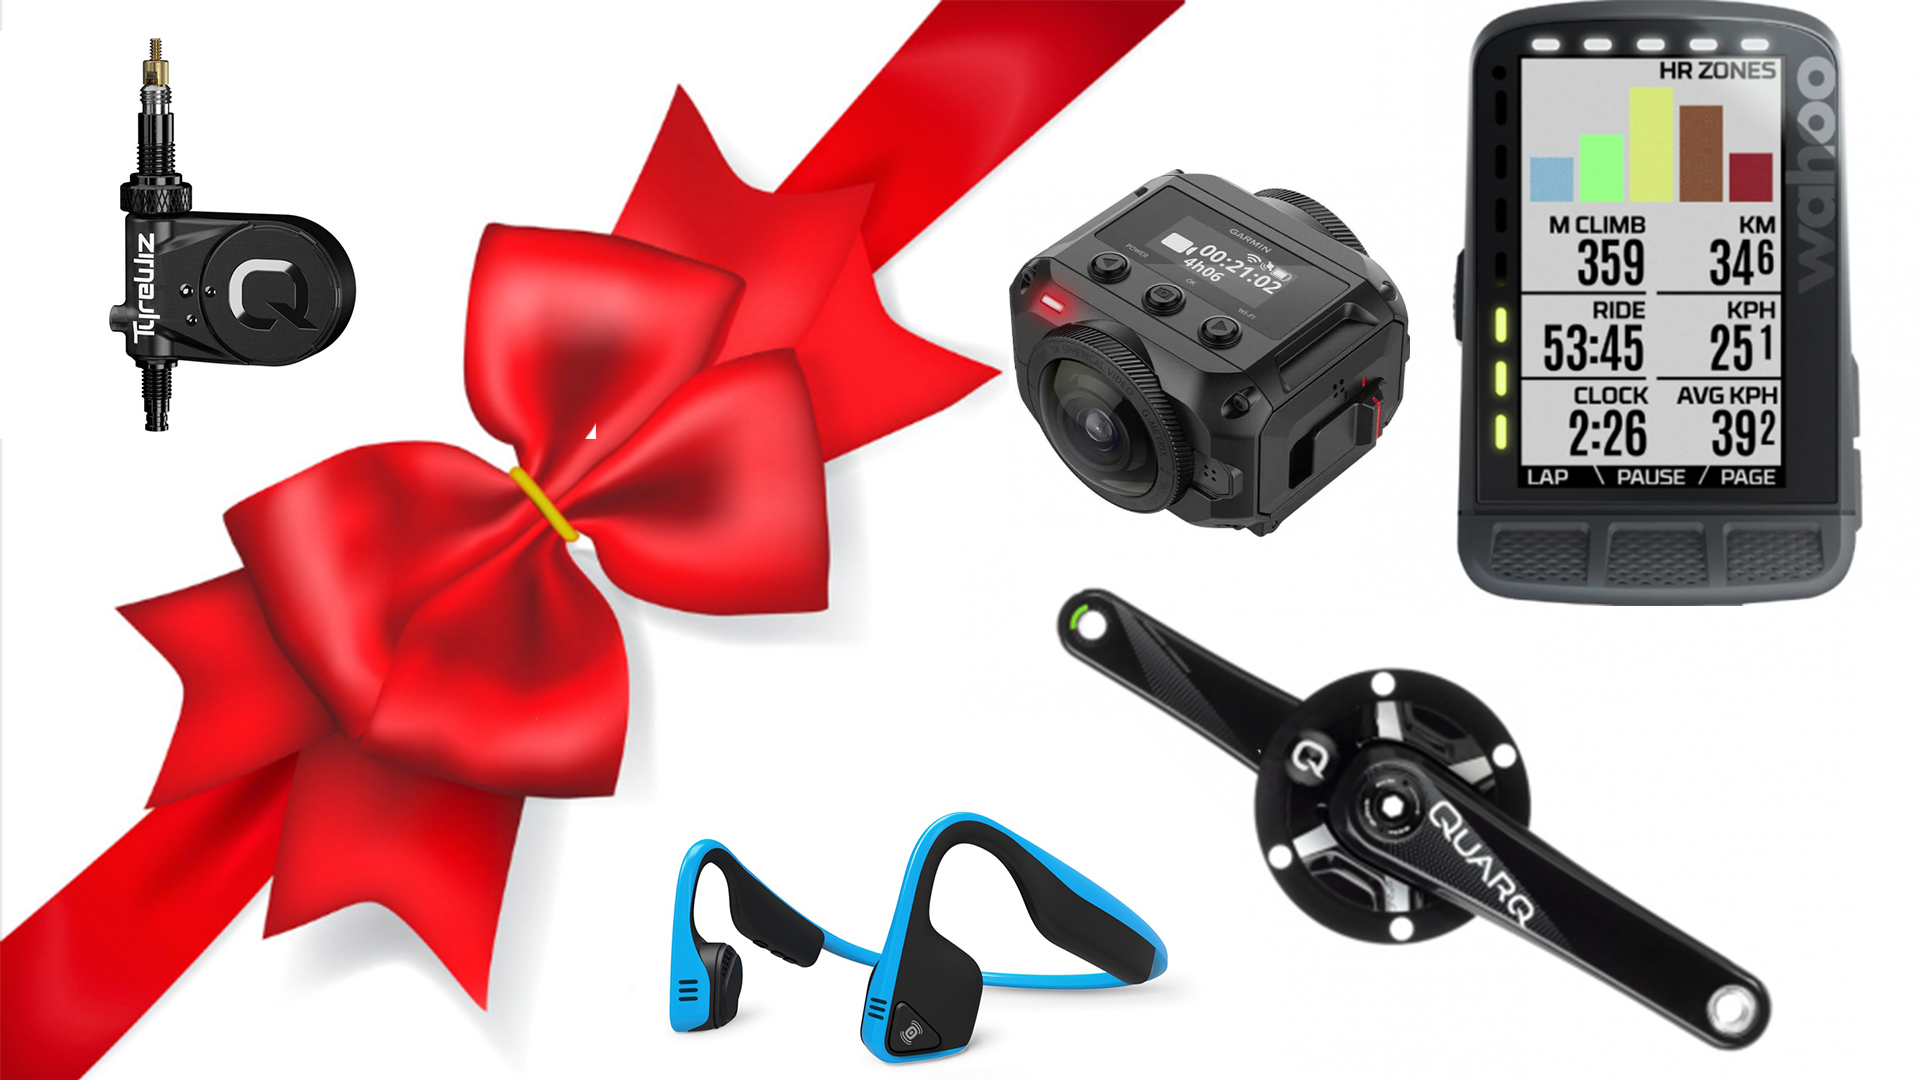 If your significant cyclist (or yourself) love leading-edge gear, this gift list is for you.